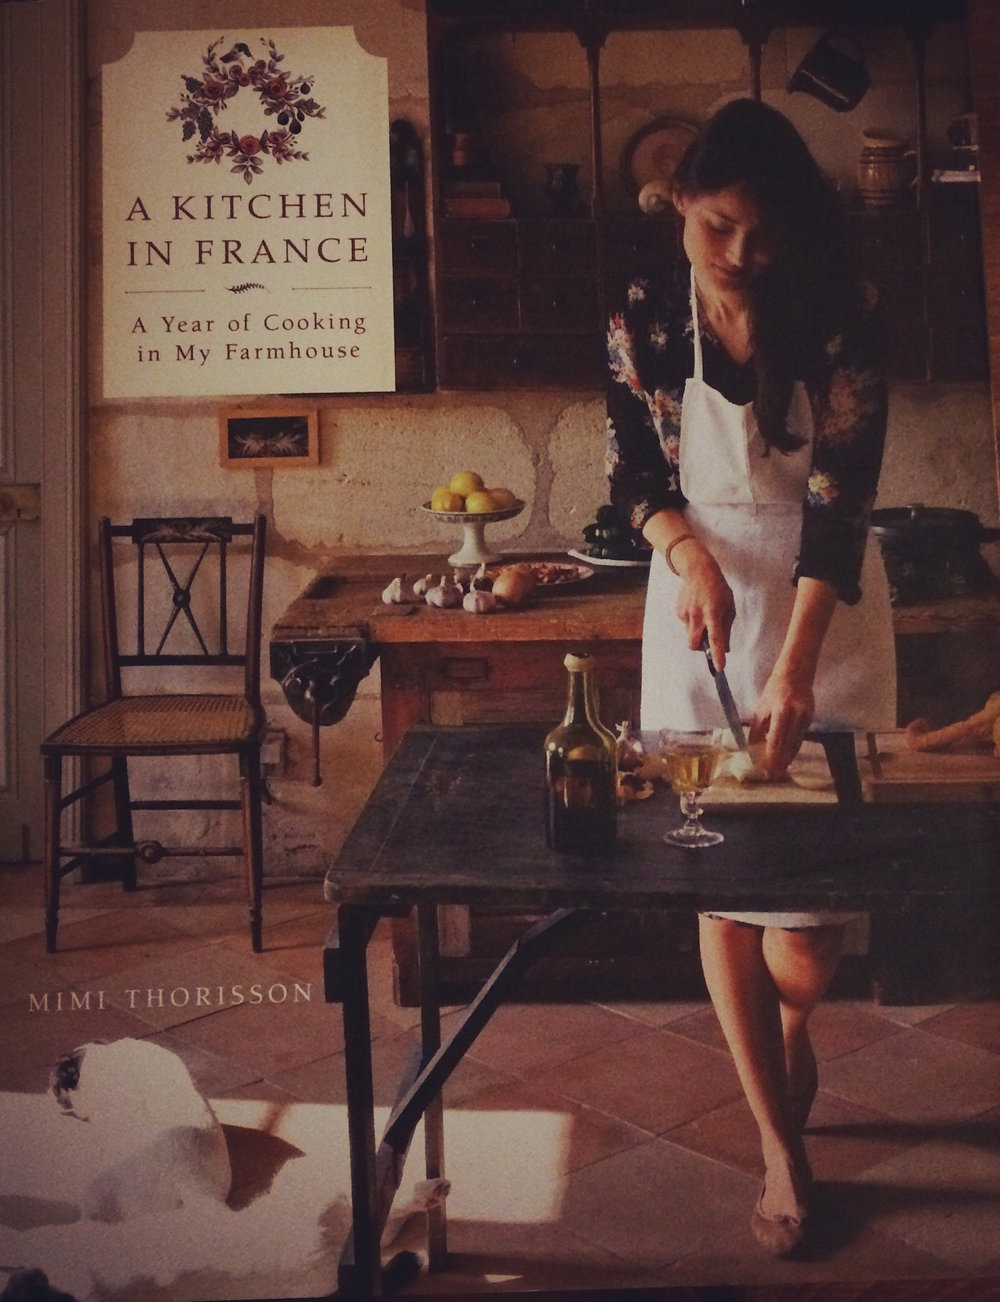 Mimi Thorisson's book:  'A Kitchen in France'.